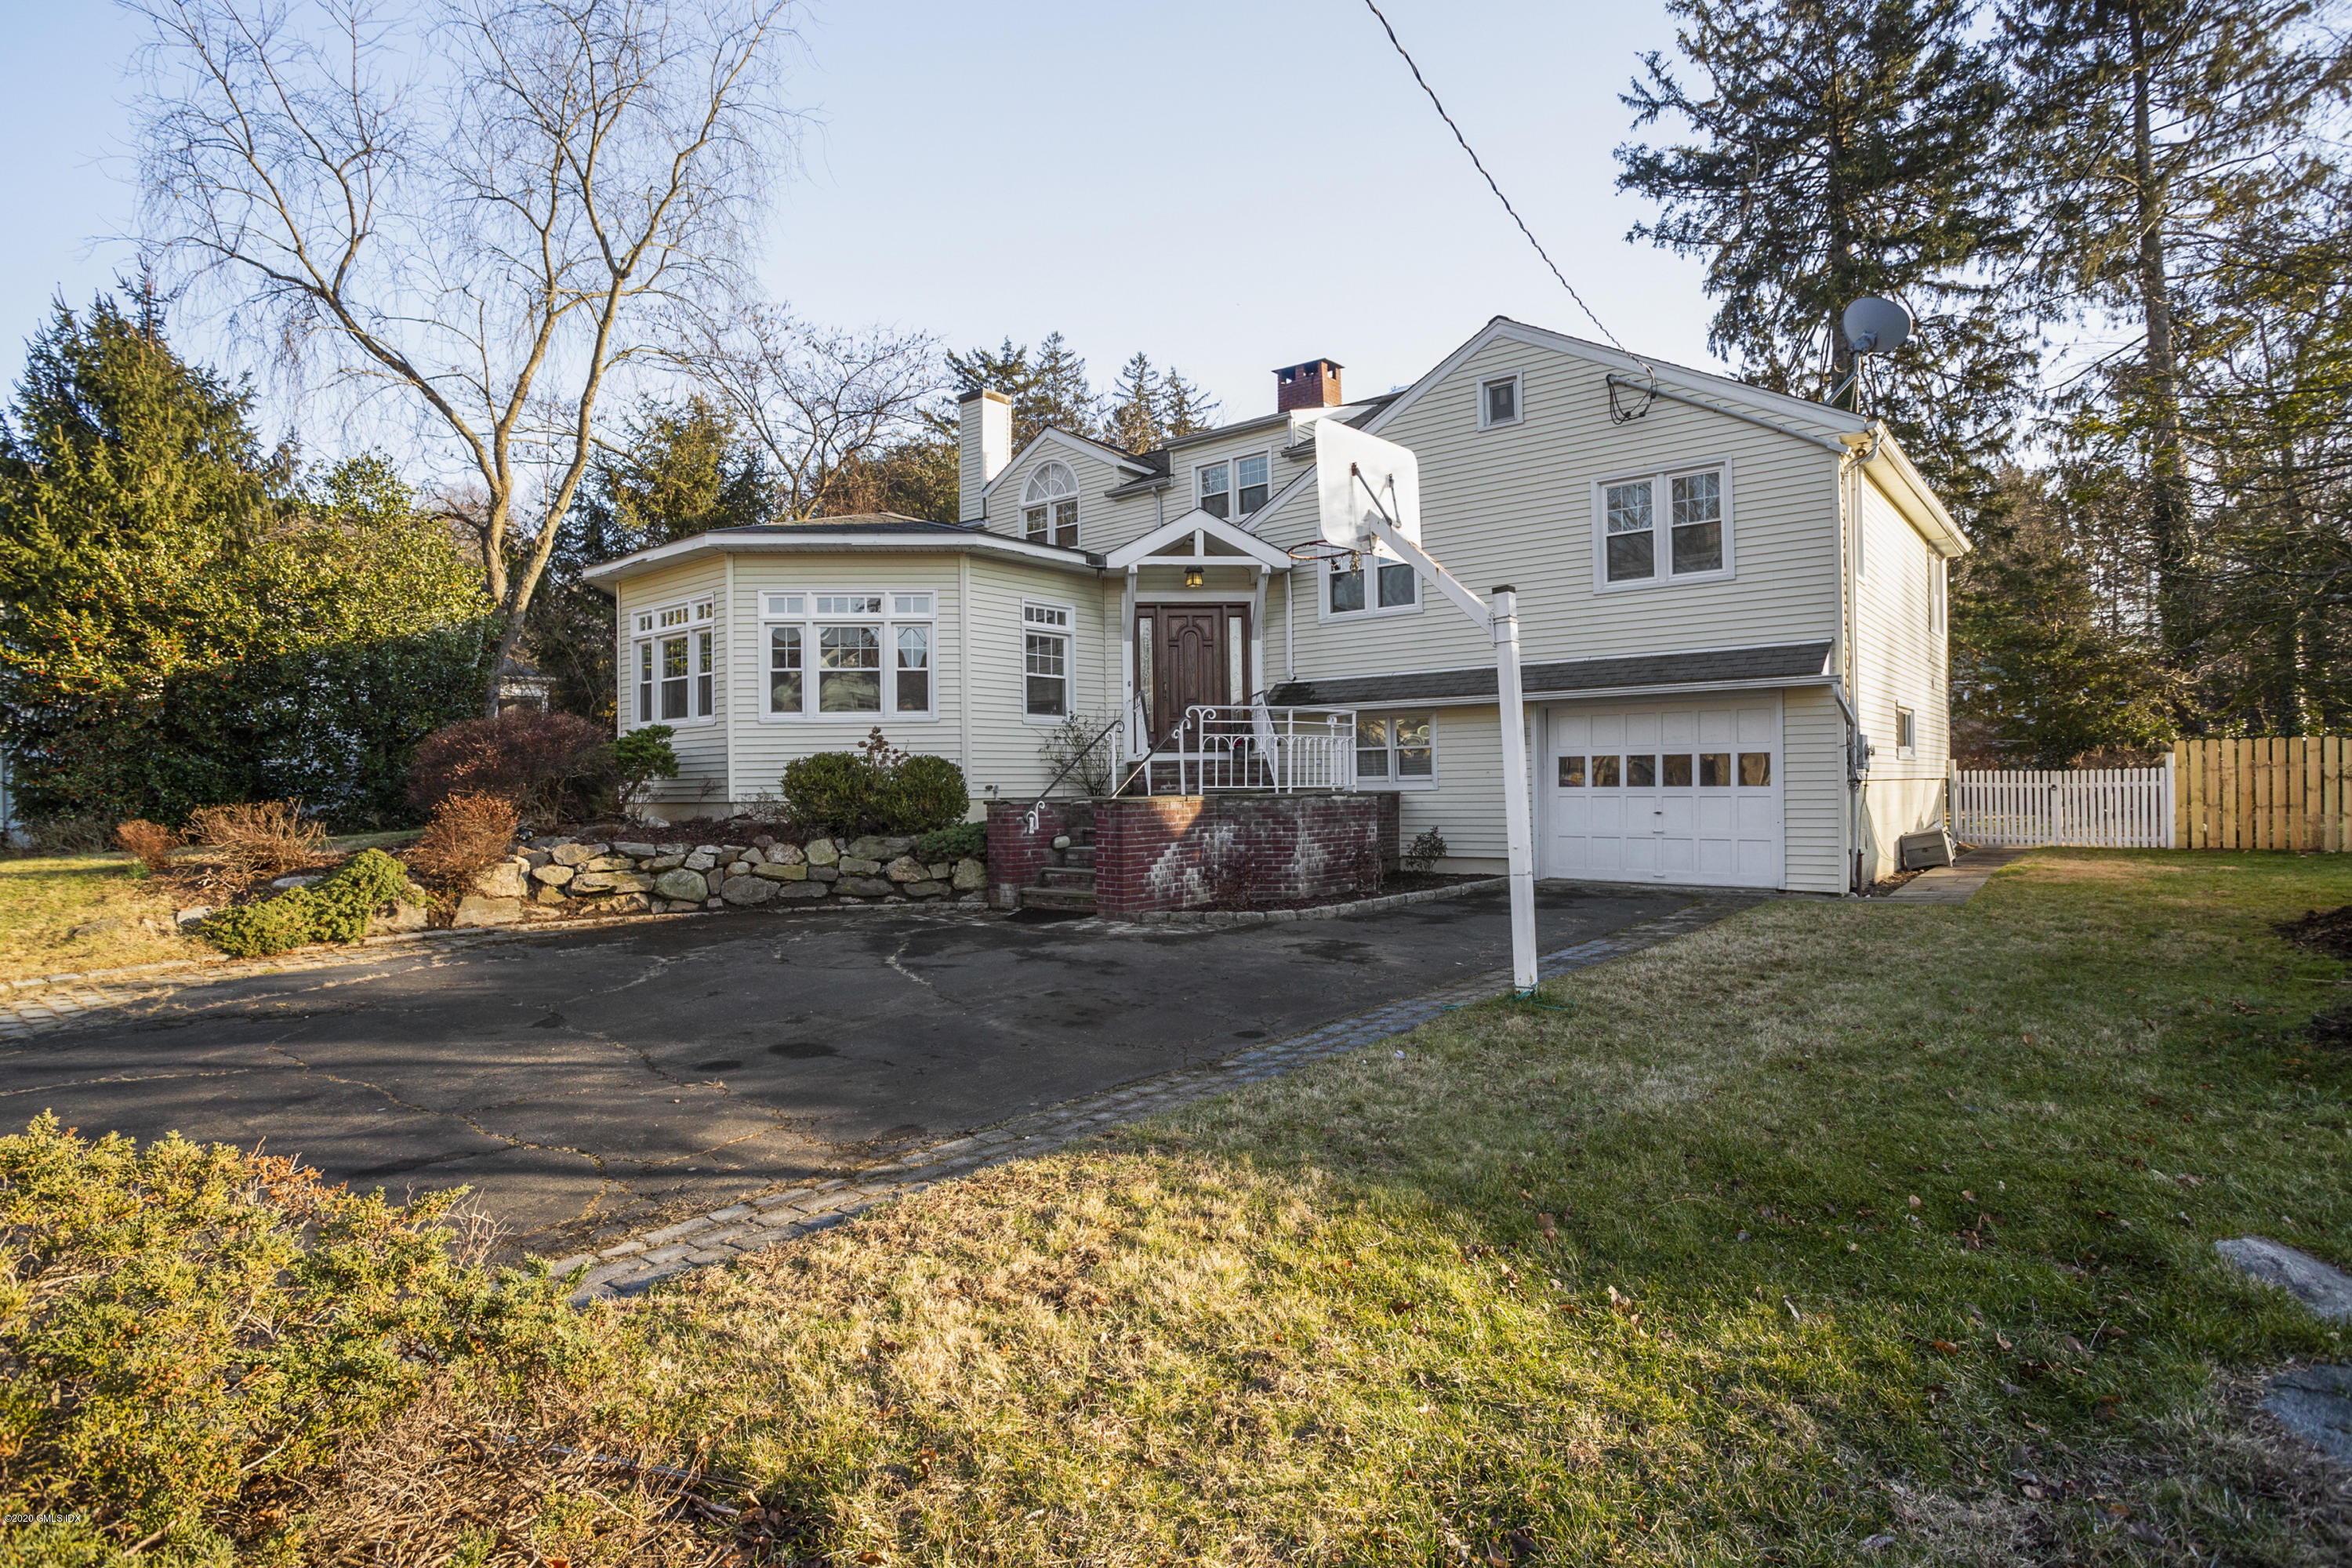 26 Bayside Terrace,Riverside,Connecticut 06878,4 Bedrooms Bedrooms,4 BathroomsBathrooms,Single family,Bayside,108612